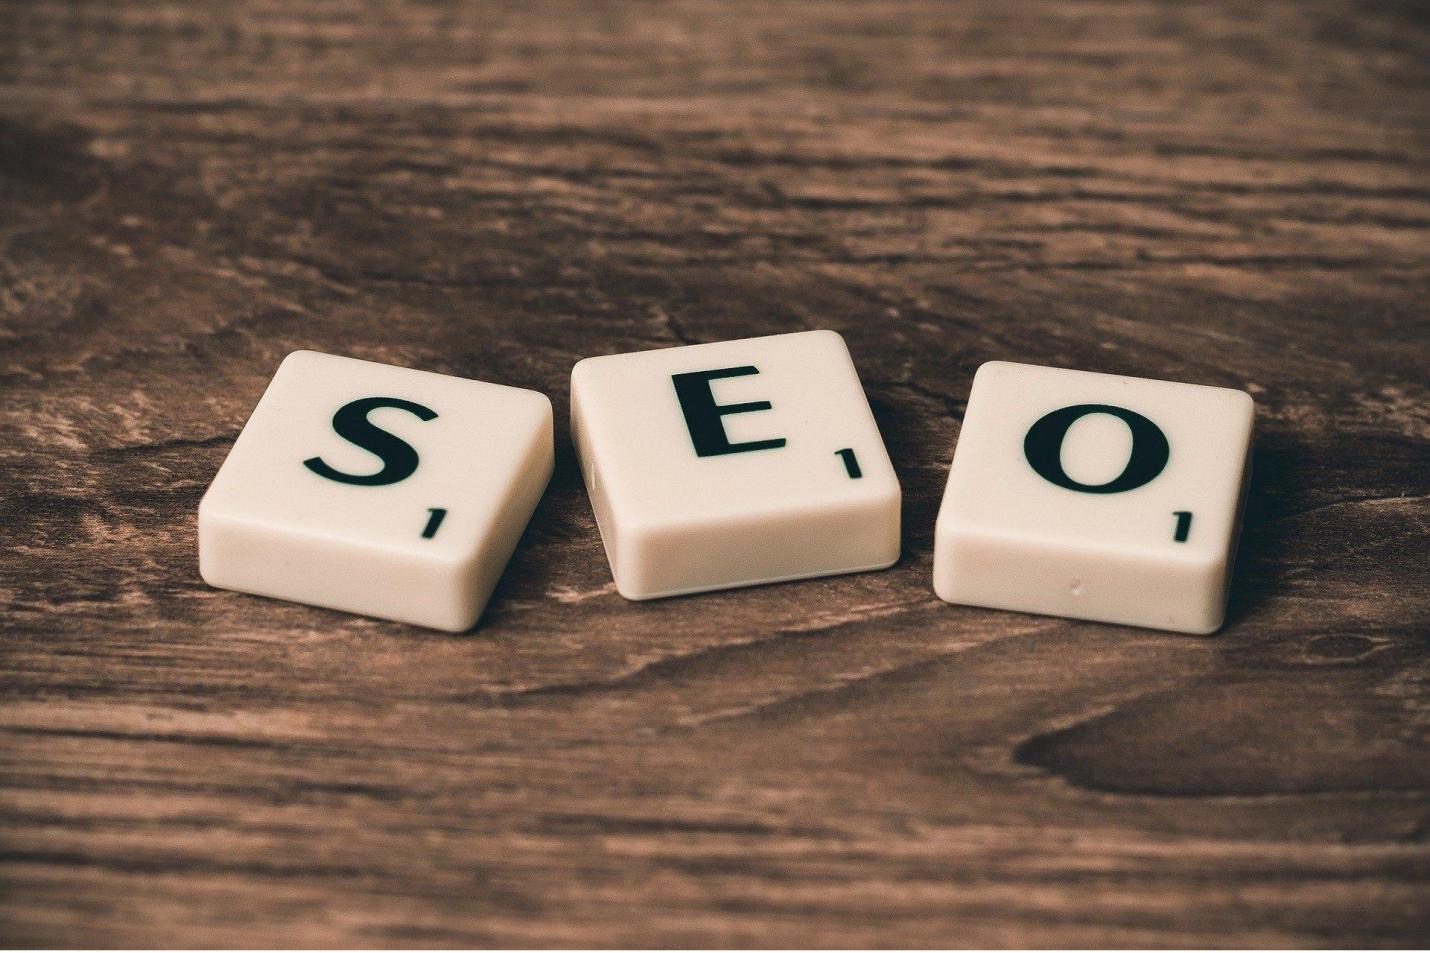 SEO helps improve your site's ranking in search engine results.